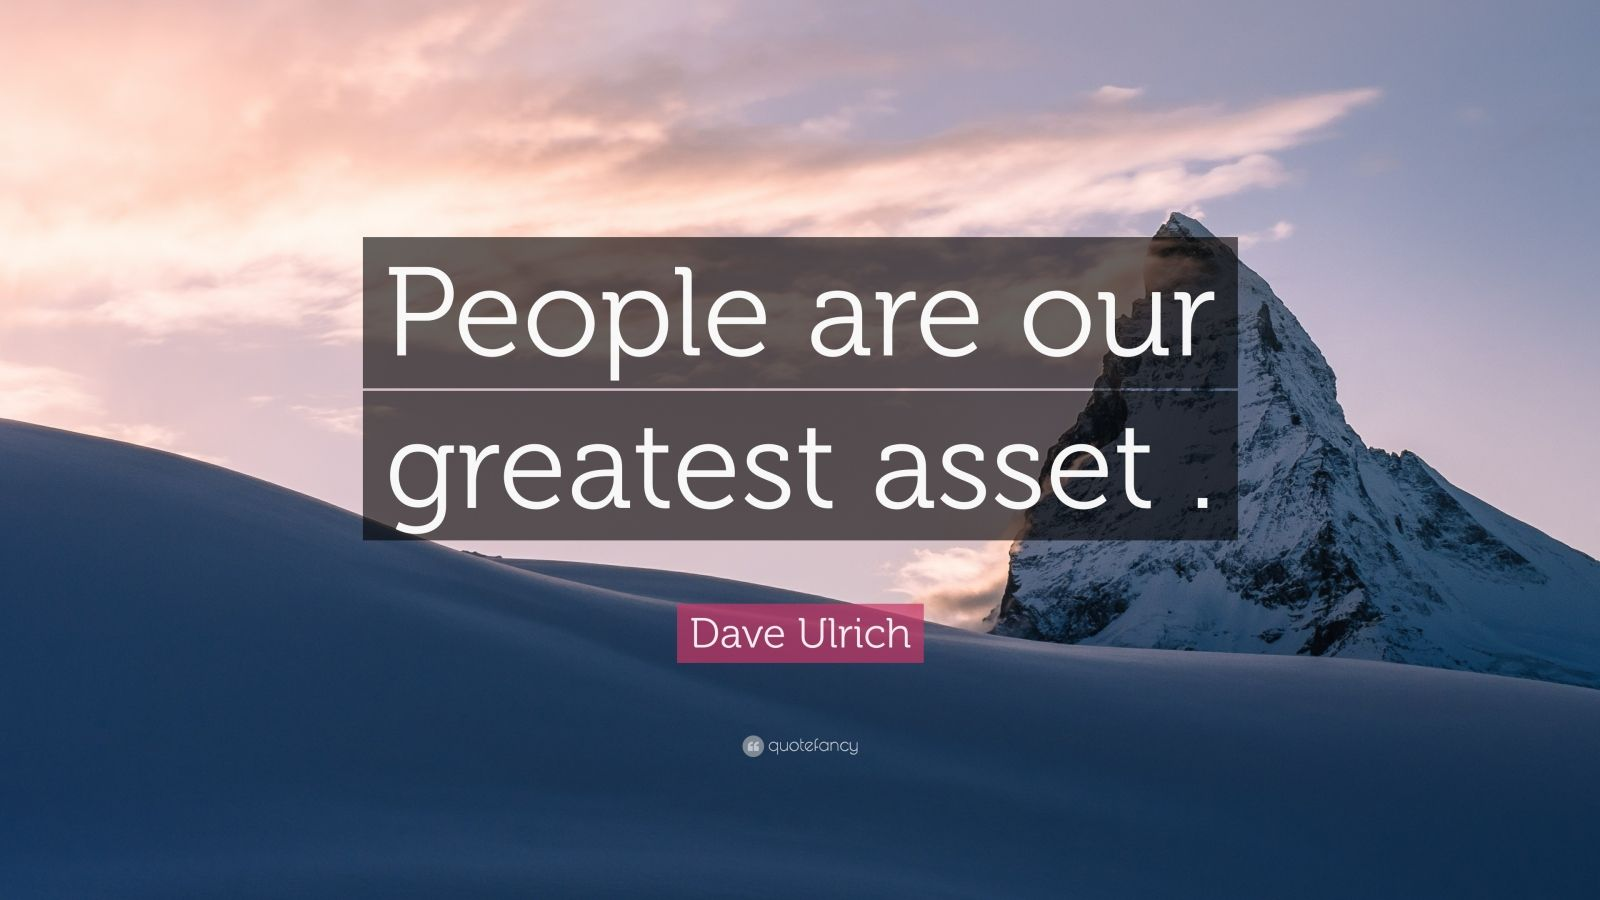 Steve Jobs Motivational Quotes Wallpaper Dave Ulrich Quote People Are Our Greatest Asset 12